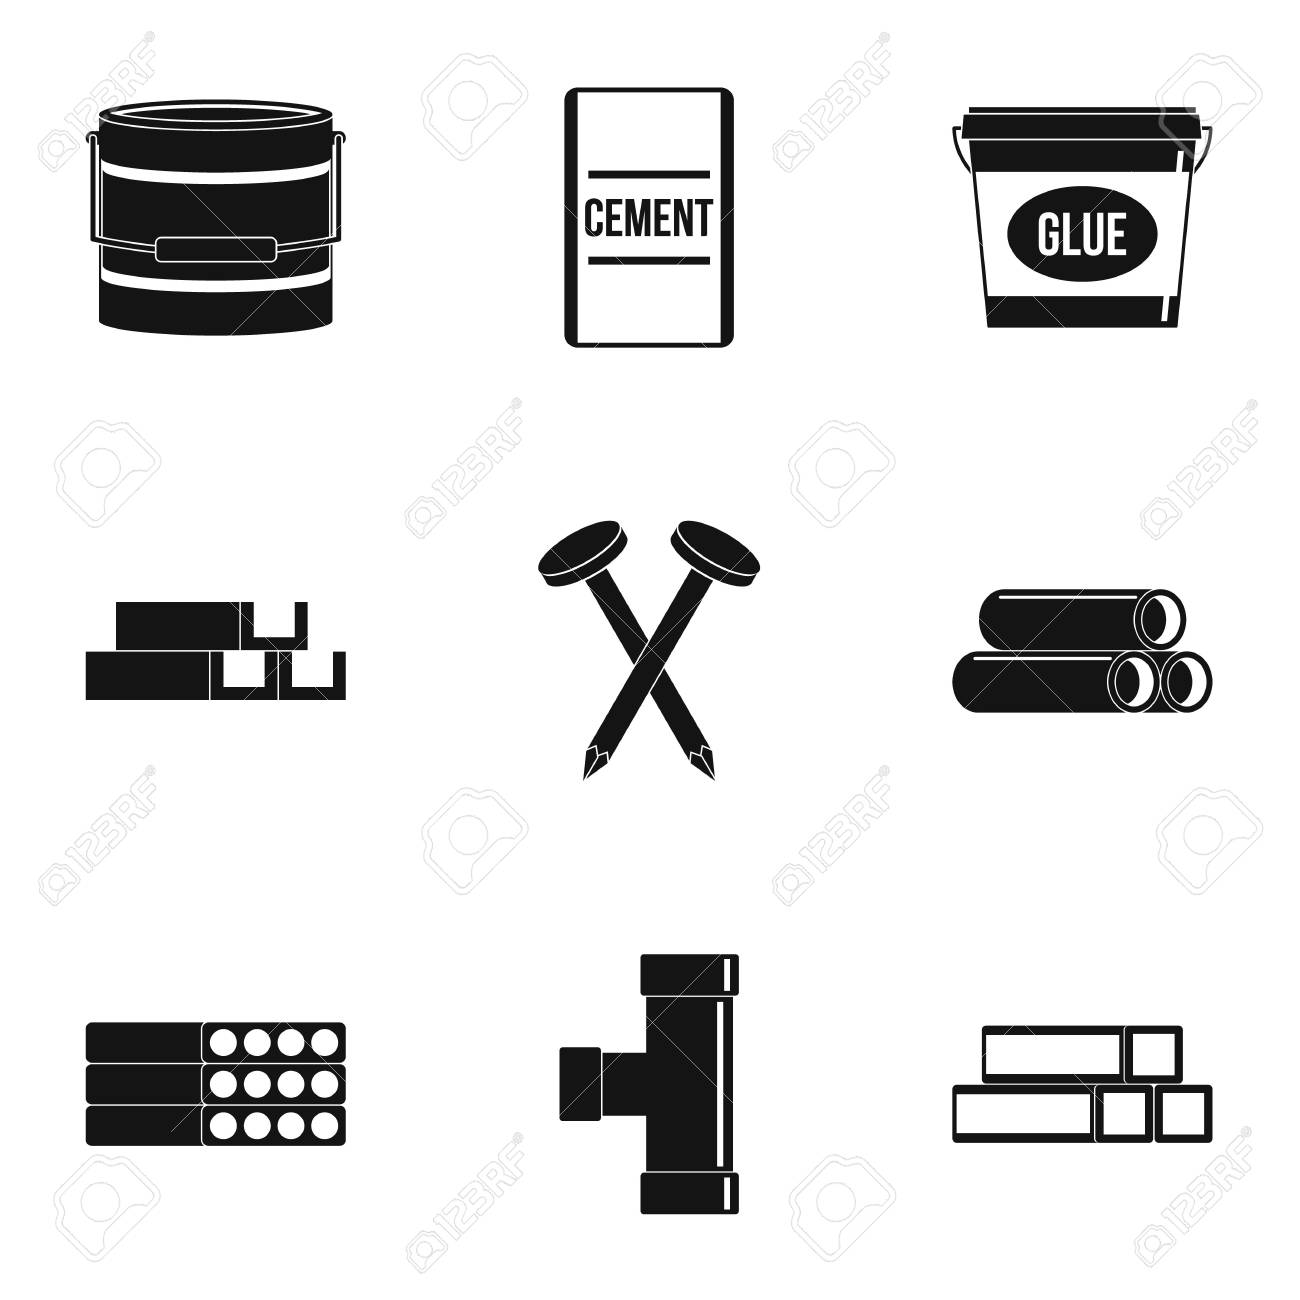 Building Material Icon Set Simple Set Of 9 Building Material Royalty Free Cliparts Vectors And Stock Illustration Image 84556042